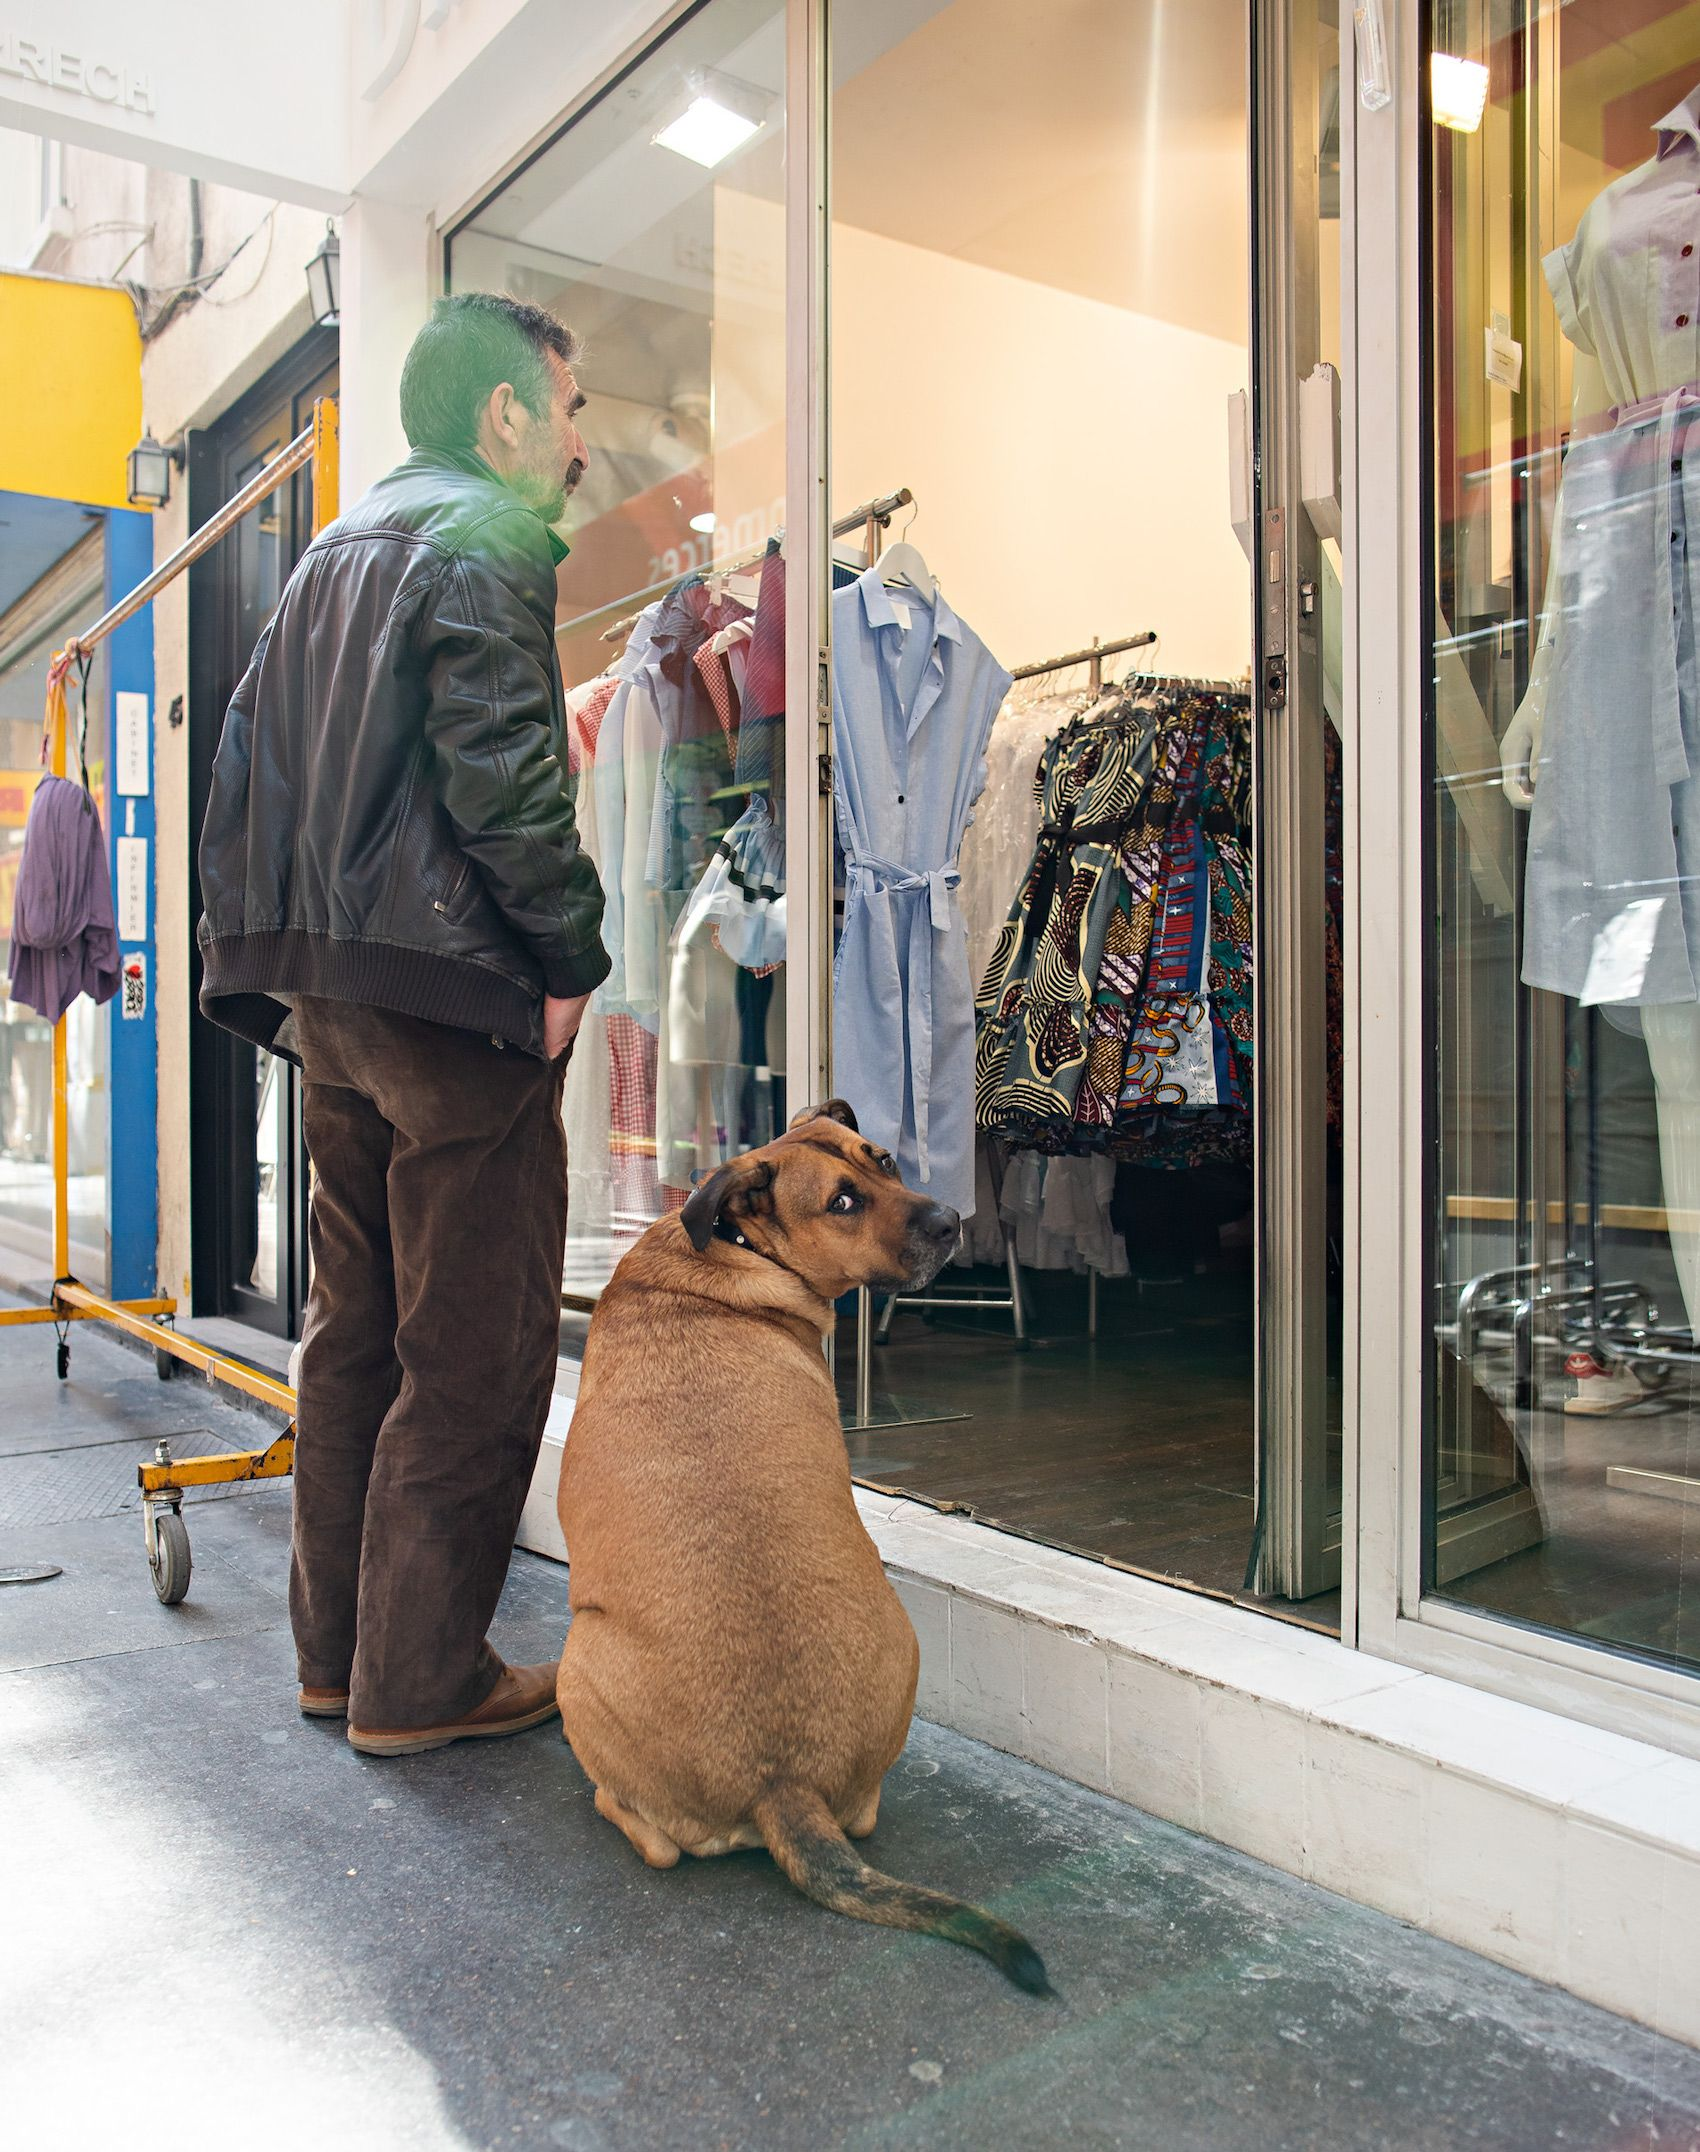 3132-Man-&-Dog-Shopping.jpg